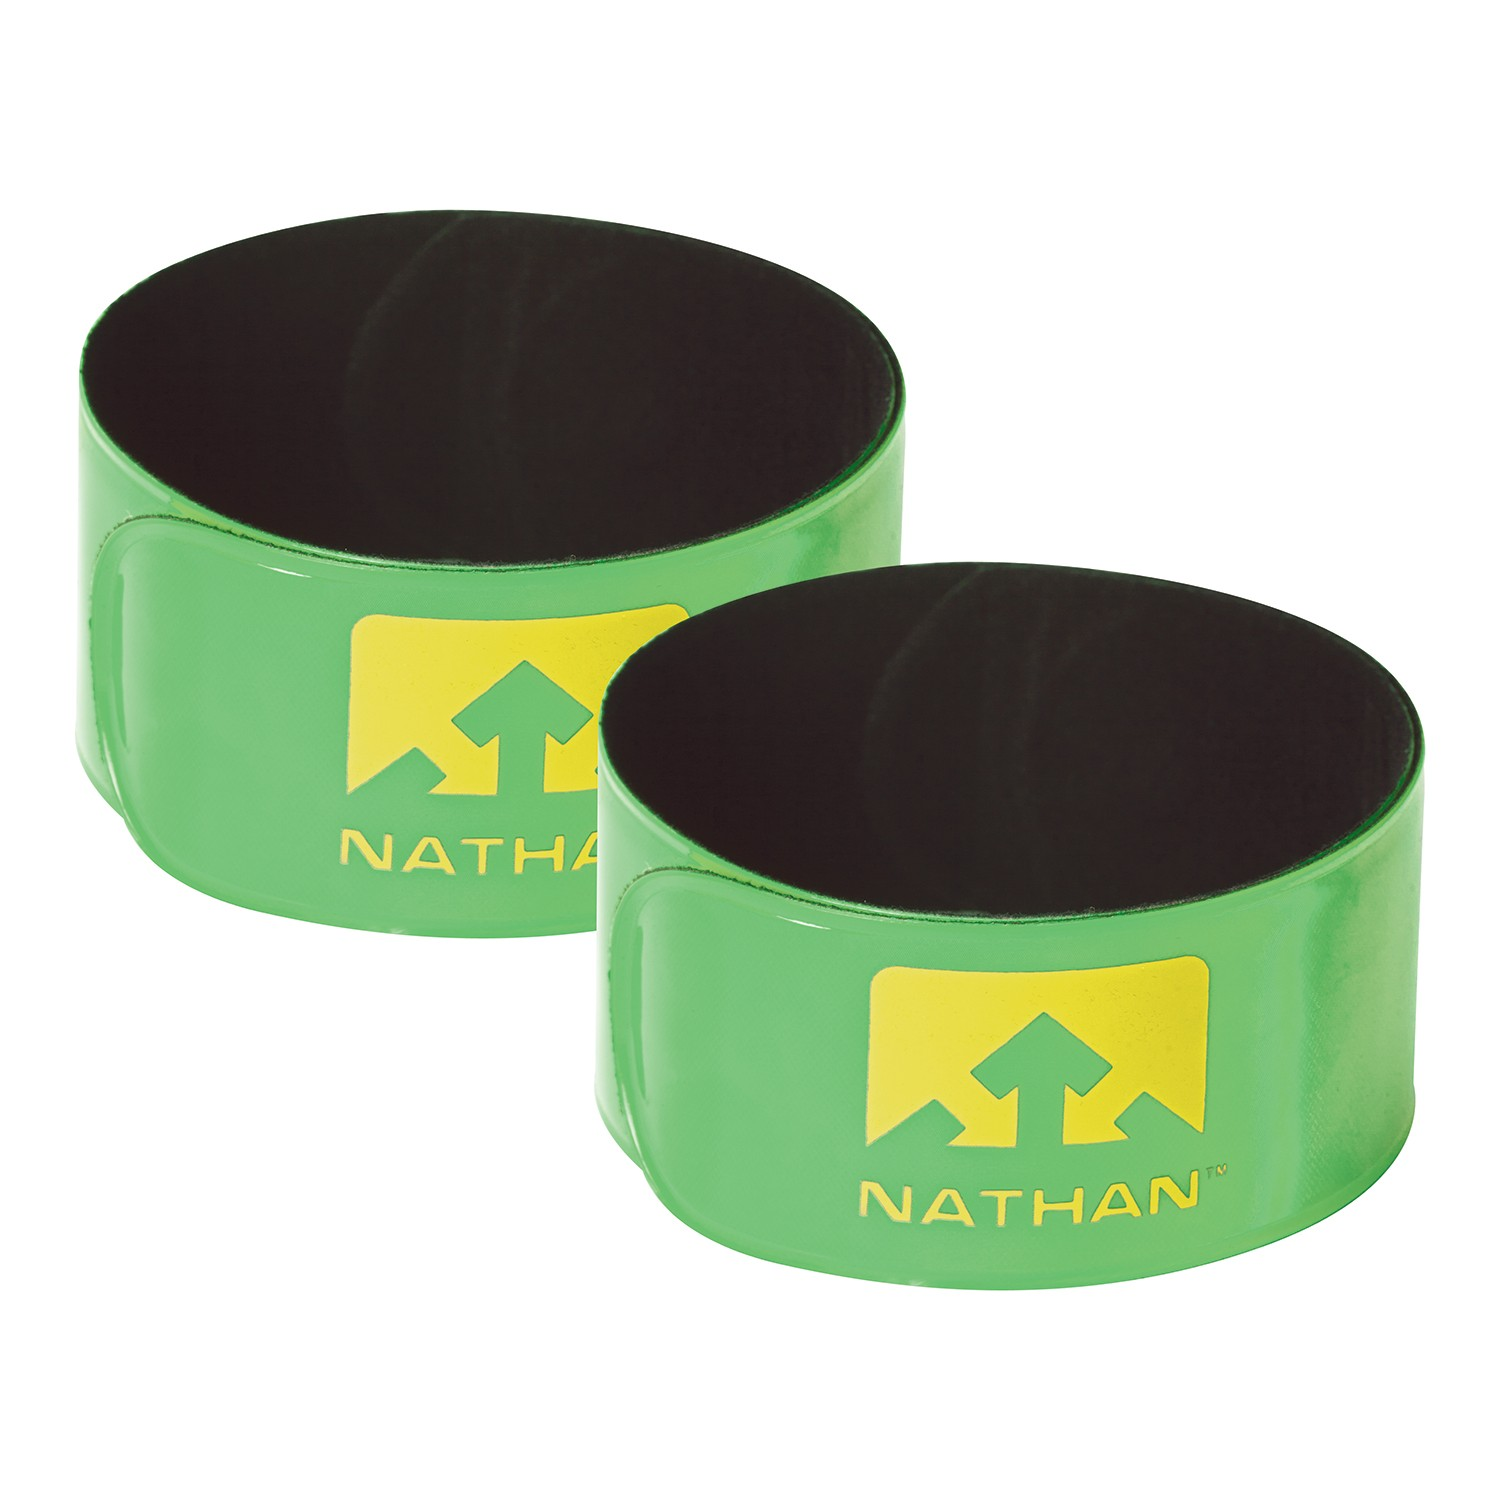 Nathan Reflex Snap Band (2 pack)